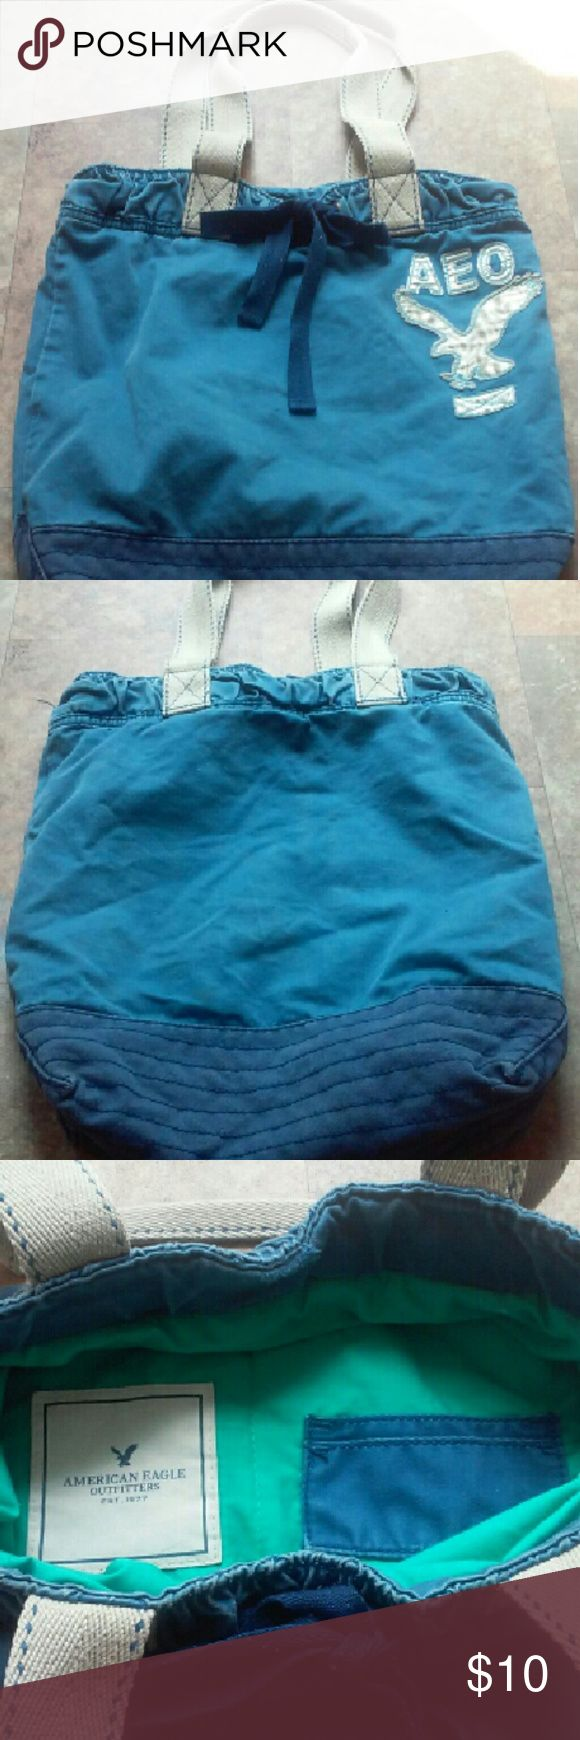 American Eagle Outfitters Tote Bag Used tote bag, good condition, smoke free, colors as shown! American Eagle Outfitters Bags Shoulder Bags